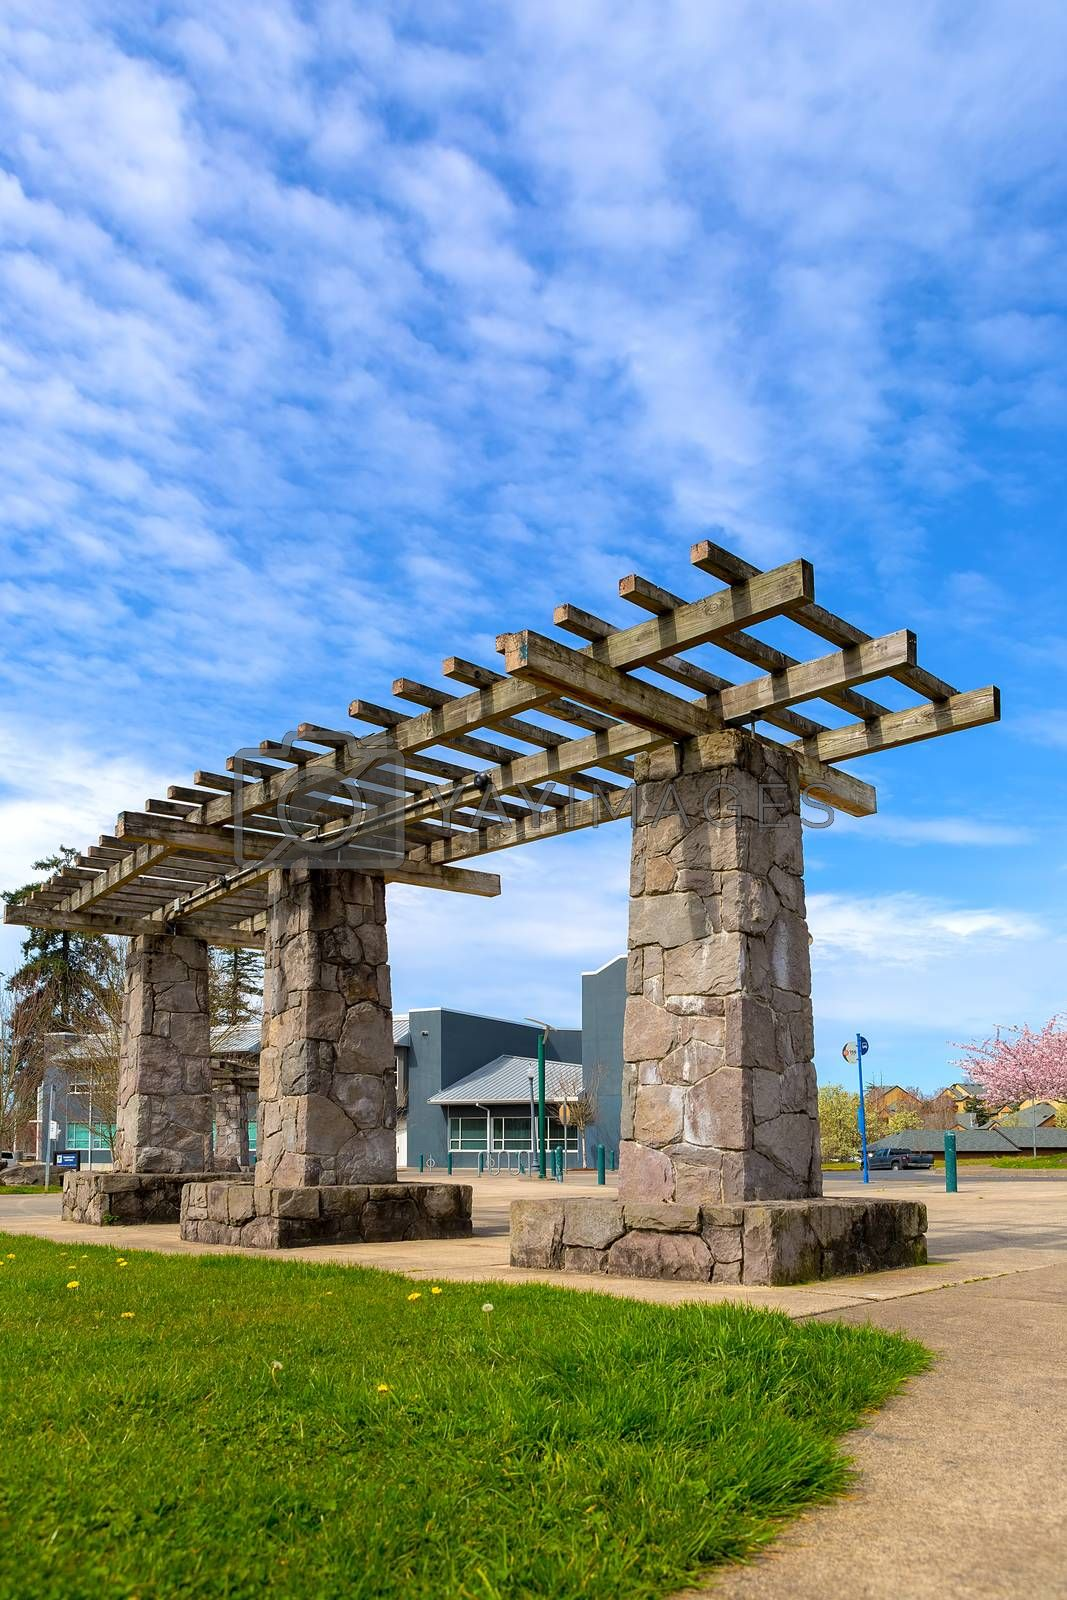 Wood and Stone Pergola structure in Happy Valley Green Village city park by the library in spring season